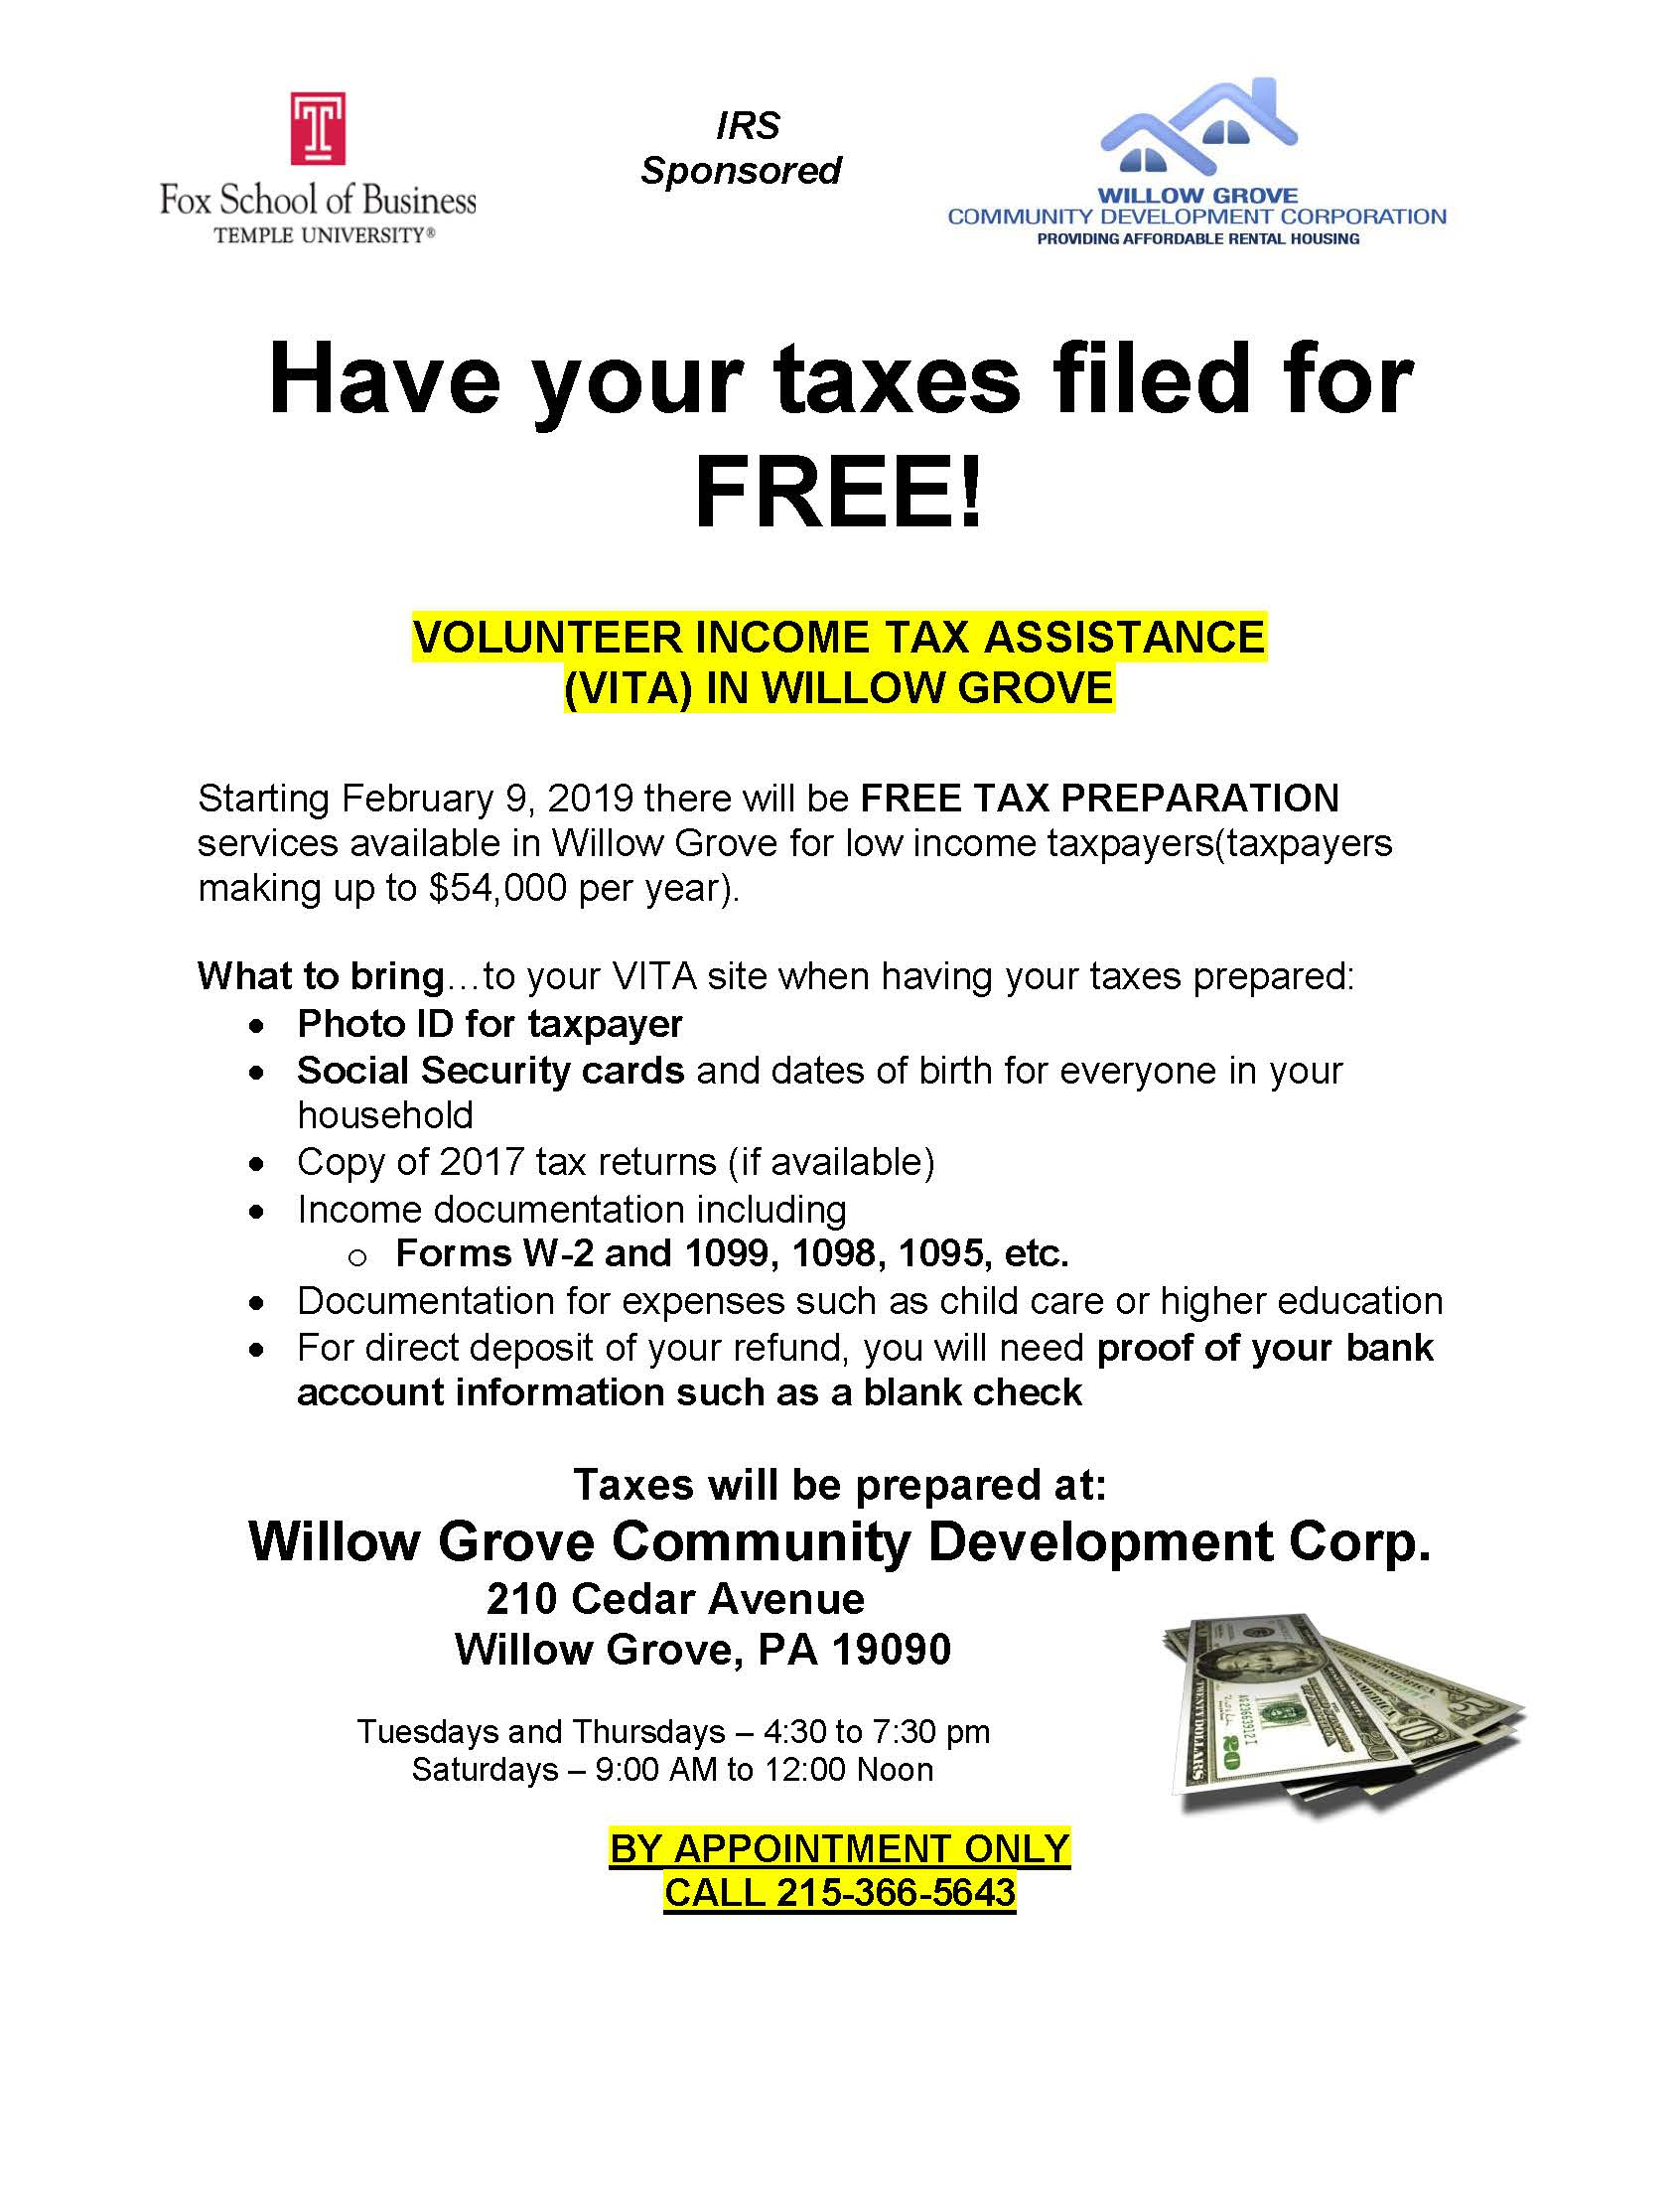 2019 VITA flier - Taxes done for free